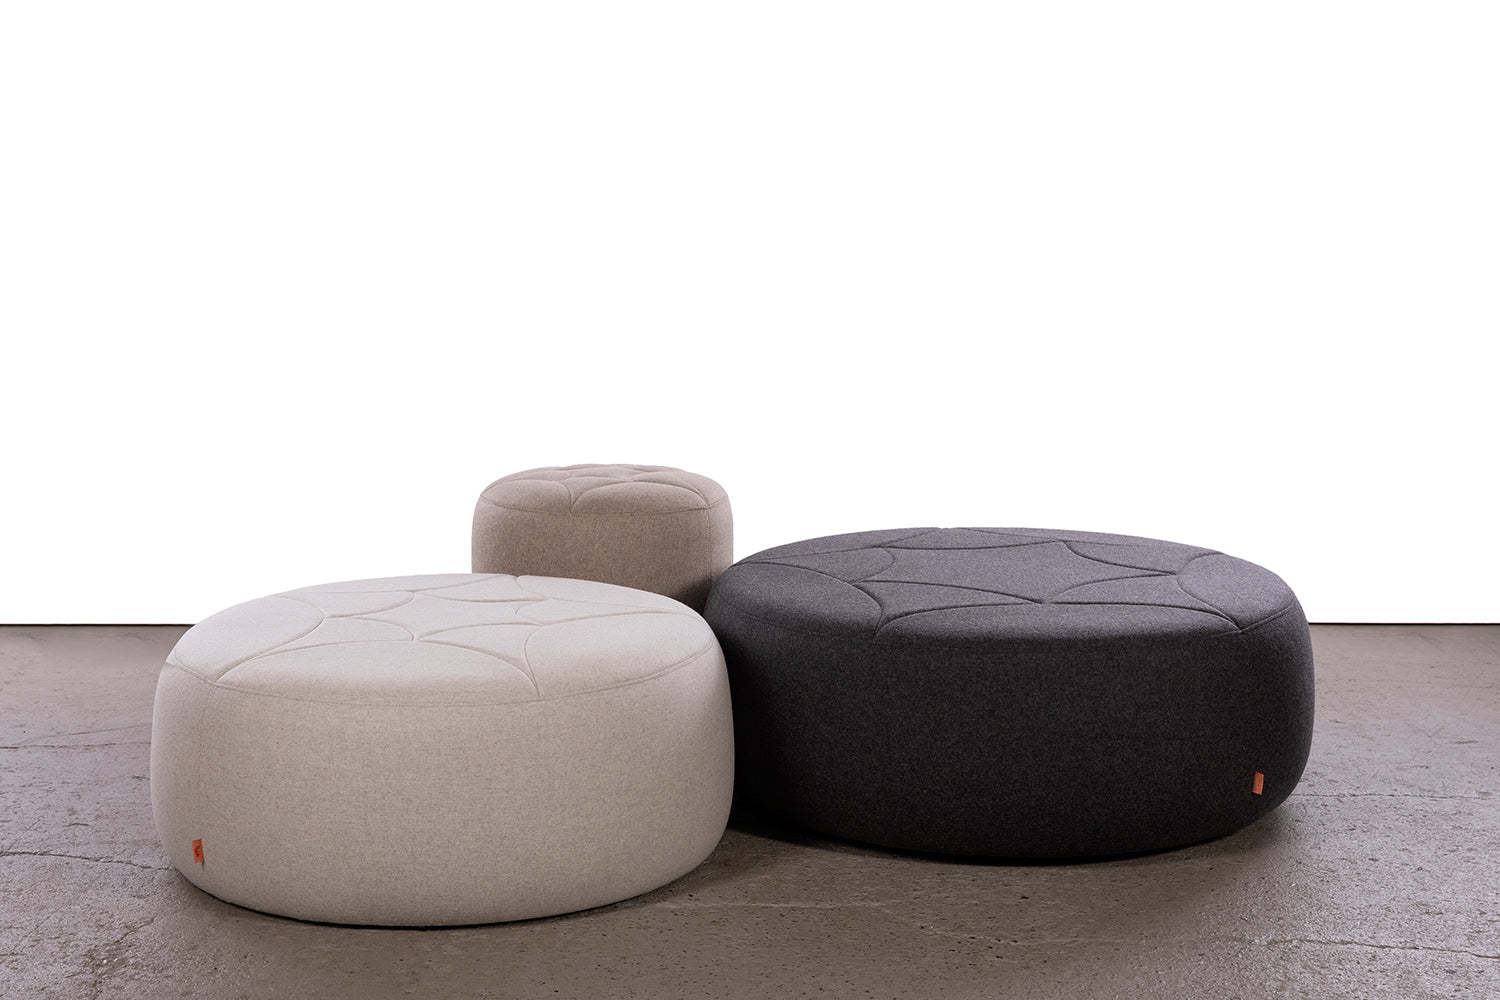 ffabb 3's companee ottomans wool blend quilted seats